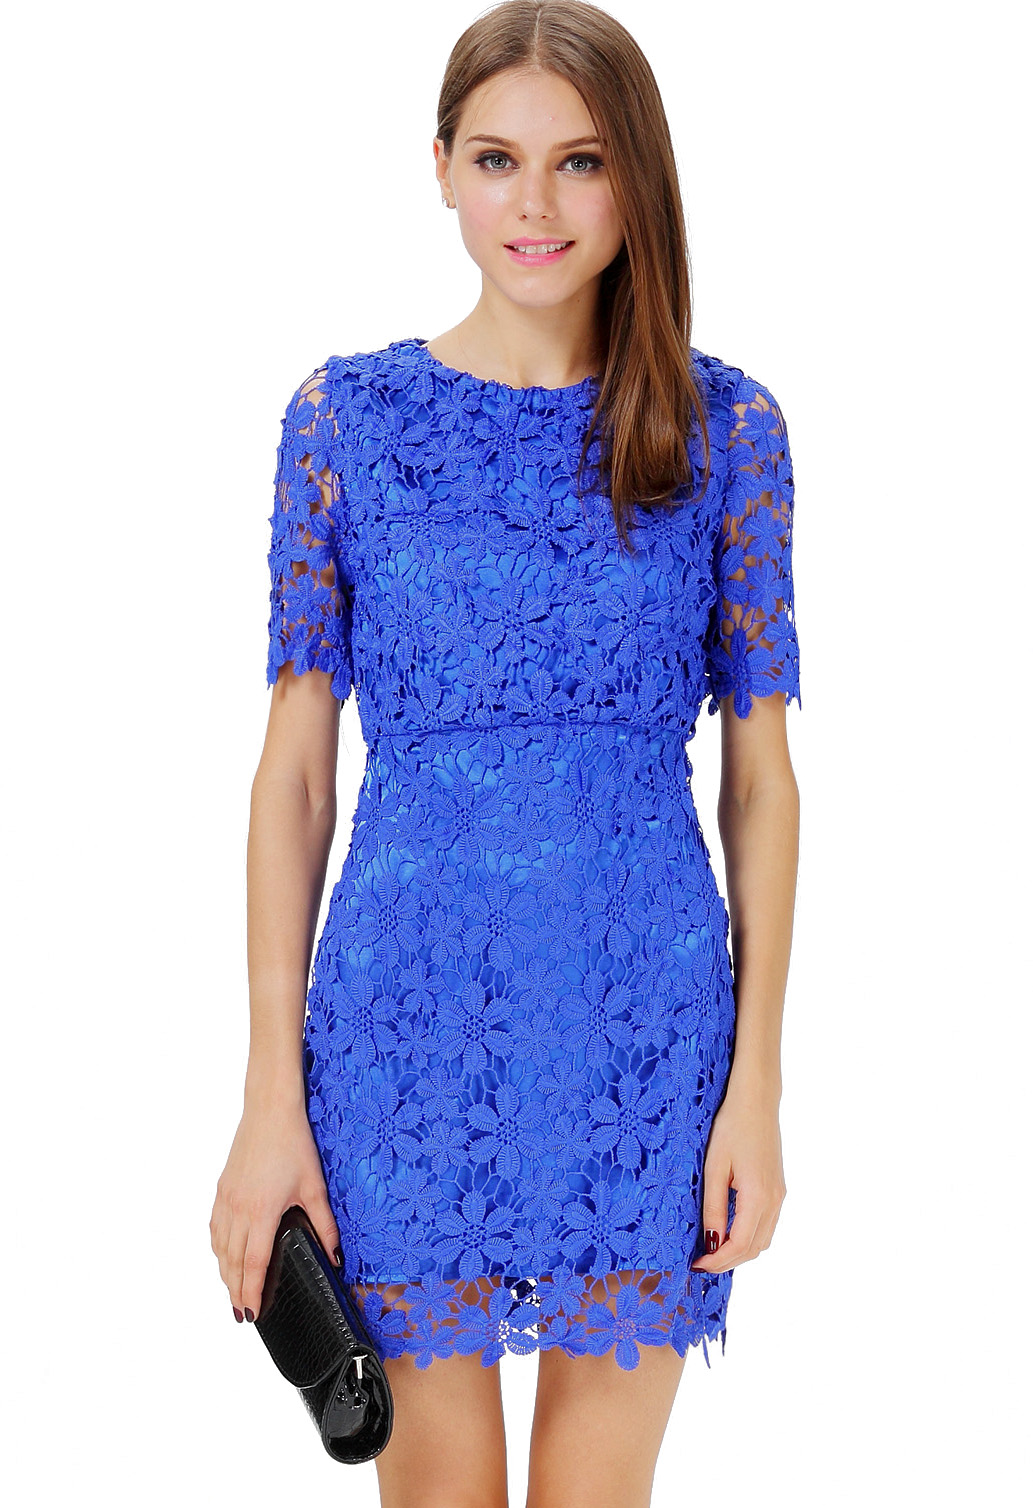 Blue Short Sleeve Hollow Floral Crochet Bodycon Dress Sheinsidecom